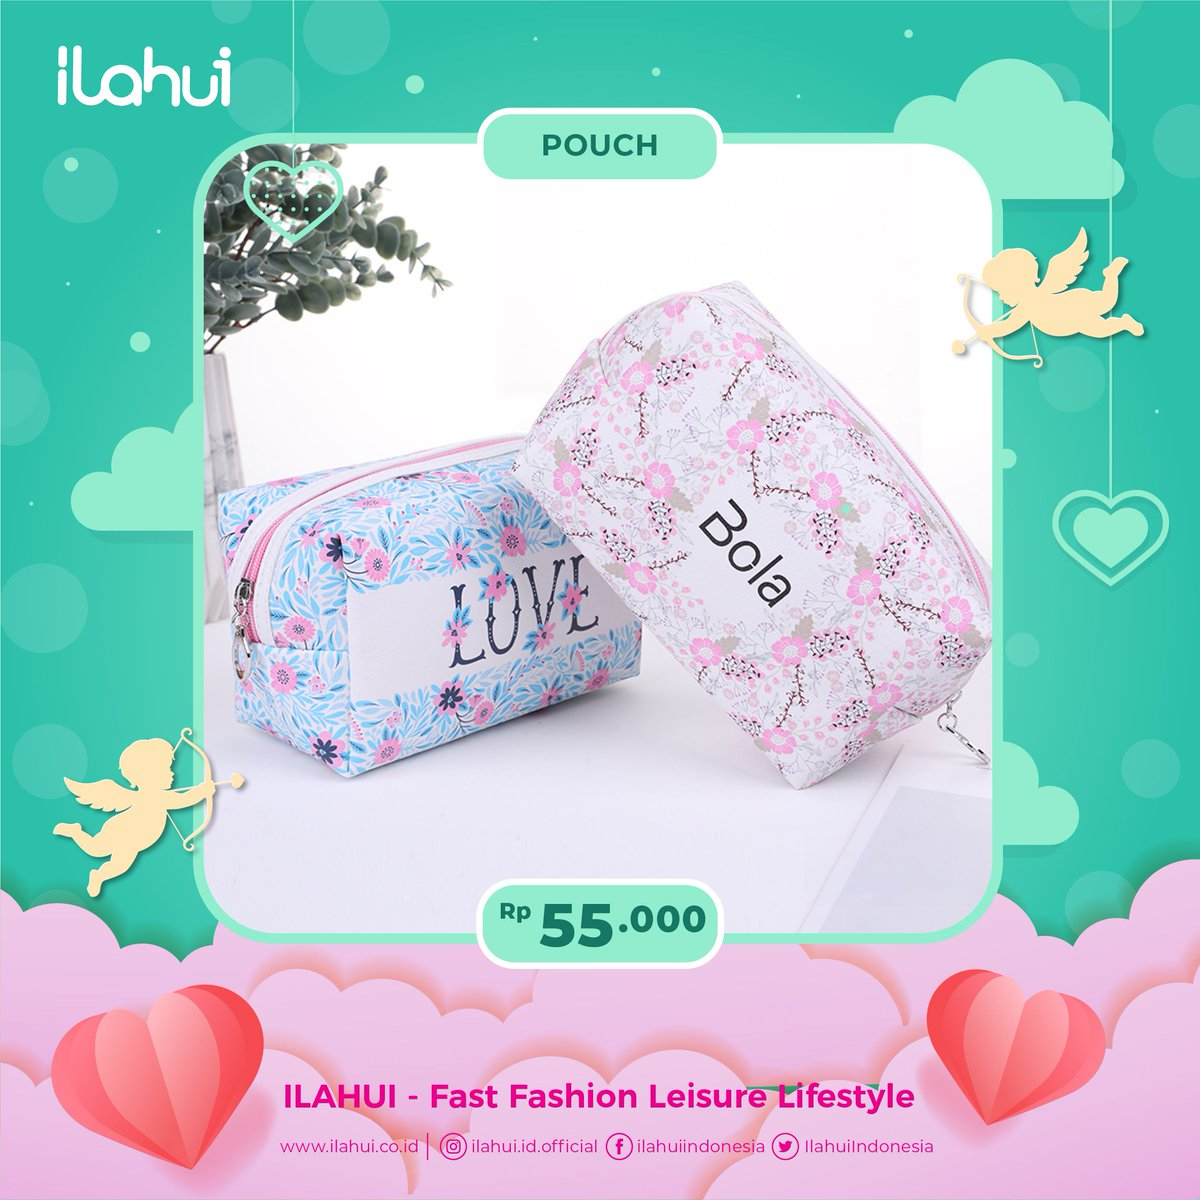 Makeup kamu juga butuh tasnya sendiri. #kuykeilahui untuk melihat koleksi pouch lainnya. -  #kuykeilahui #ilahuiindonesia #ilahuiofficial #accesories #fashion #jewelry #leisure #lifestyle #koreanstuff #pouch #makeupbag #makeuppouch